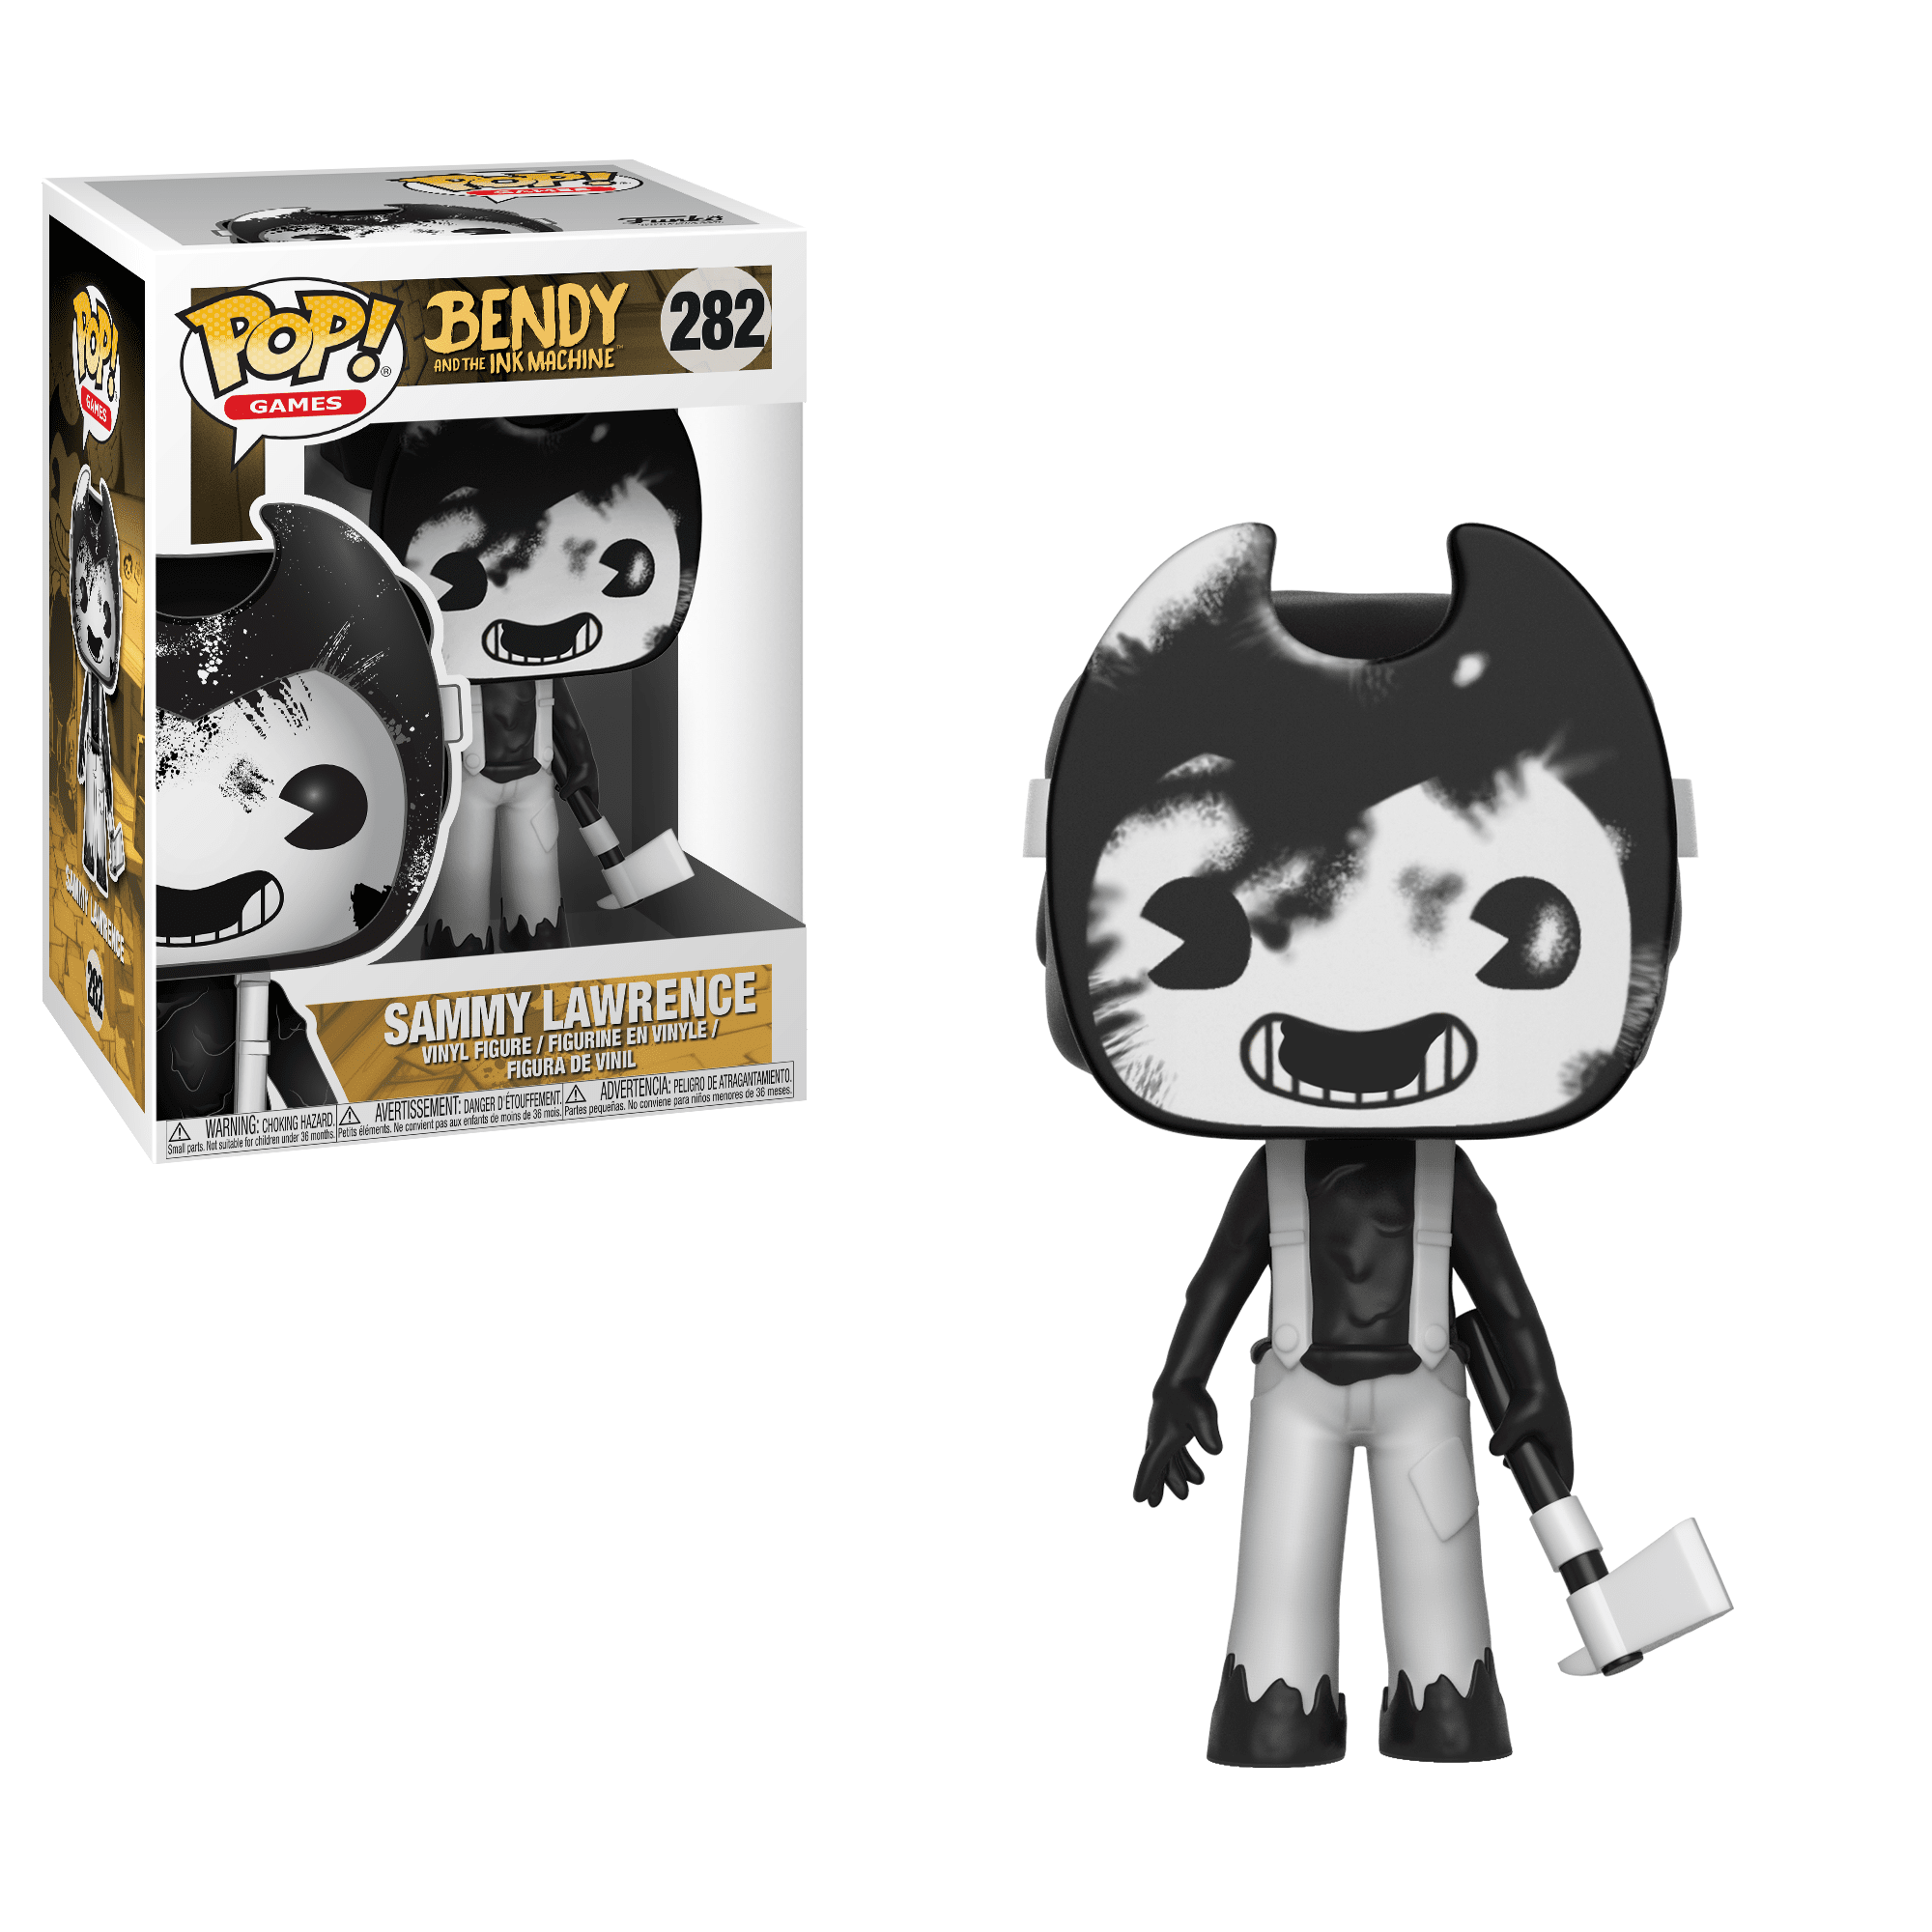 Funko Pop! Sammy Lawrence (Bendy and the Ink Machine)